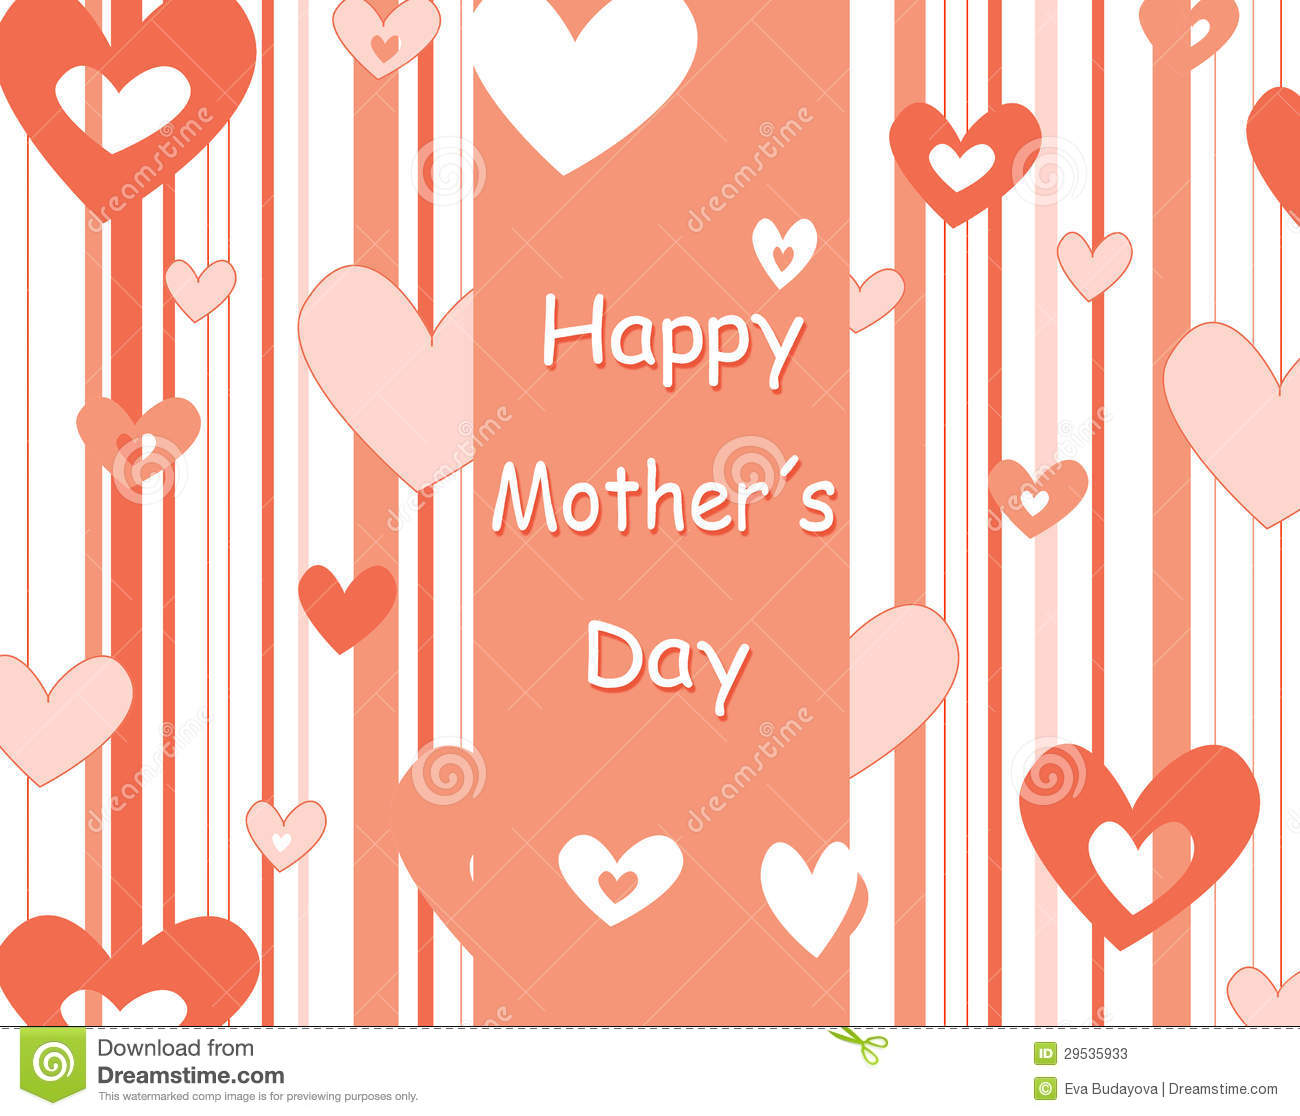 Dia feliz dos mother´s